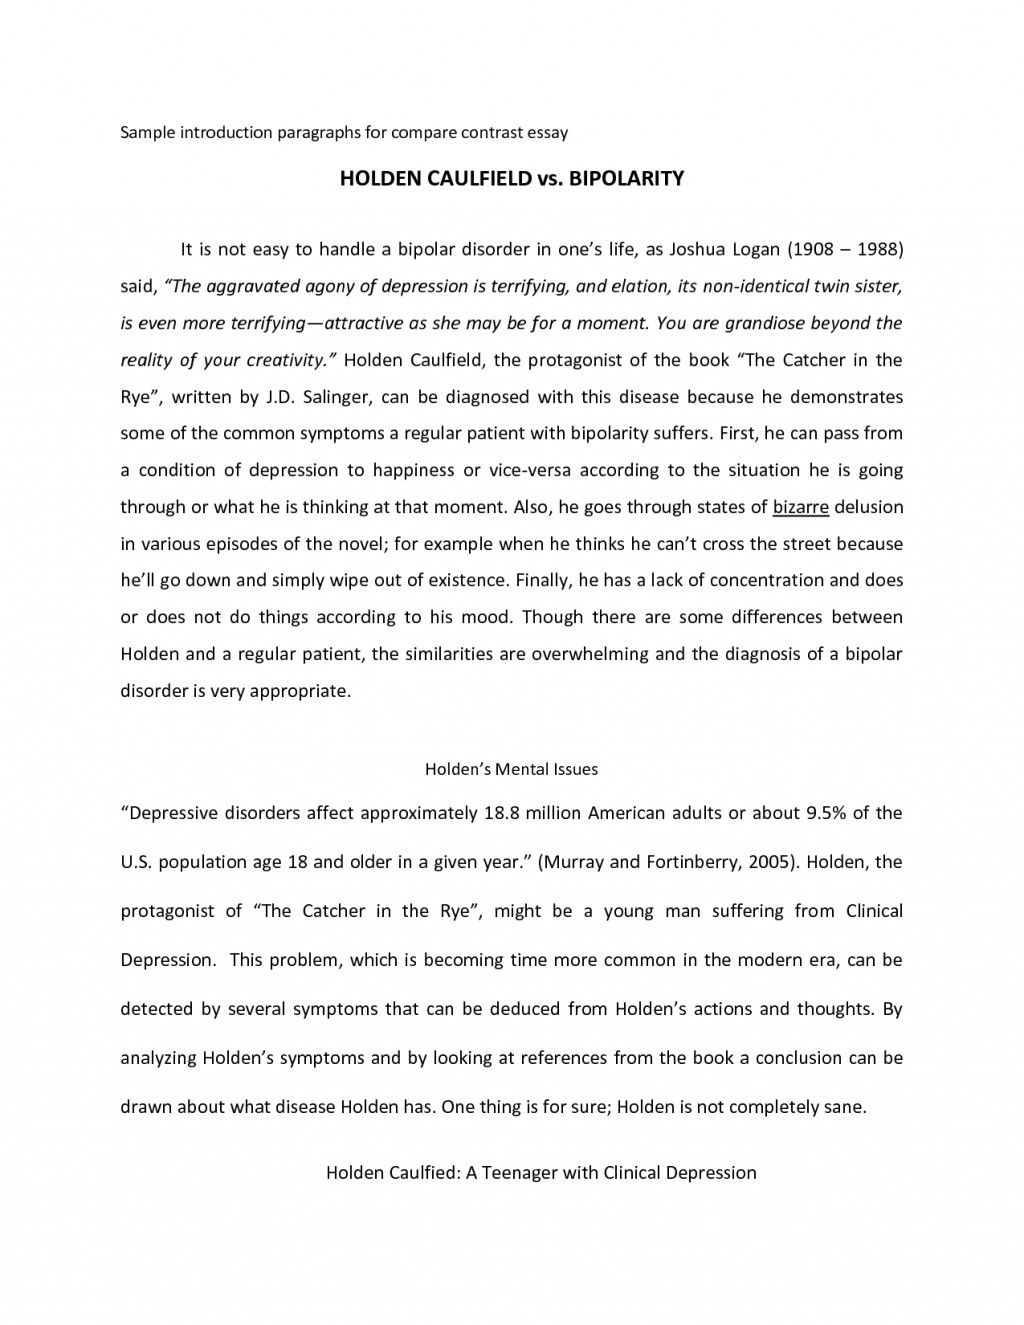 011 Compare And Contrast Essay Introduction Example Collection Of Solutions Examples Comparison Essays Bunch Ideas On L Block Format 4th Grade 5th Food Middle Magnificent Comparison/contrast Sample Paragraph Template Large